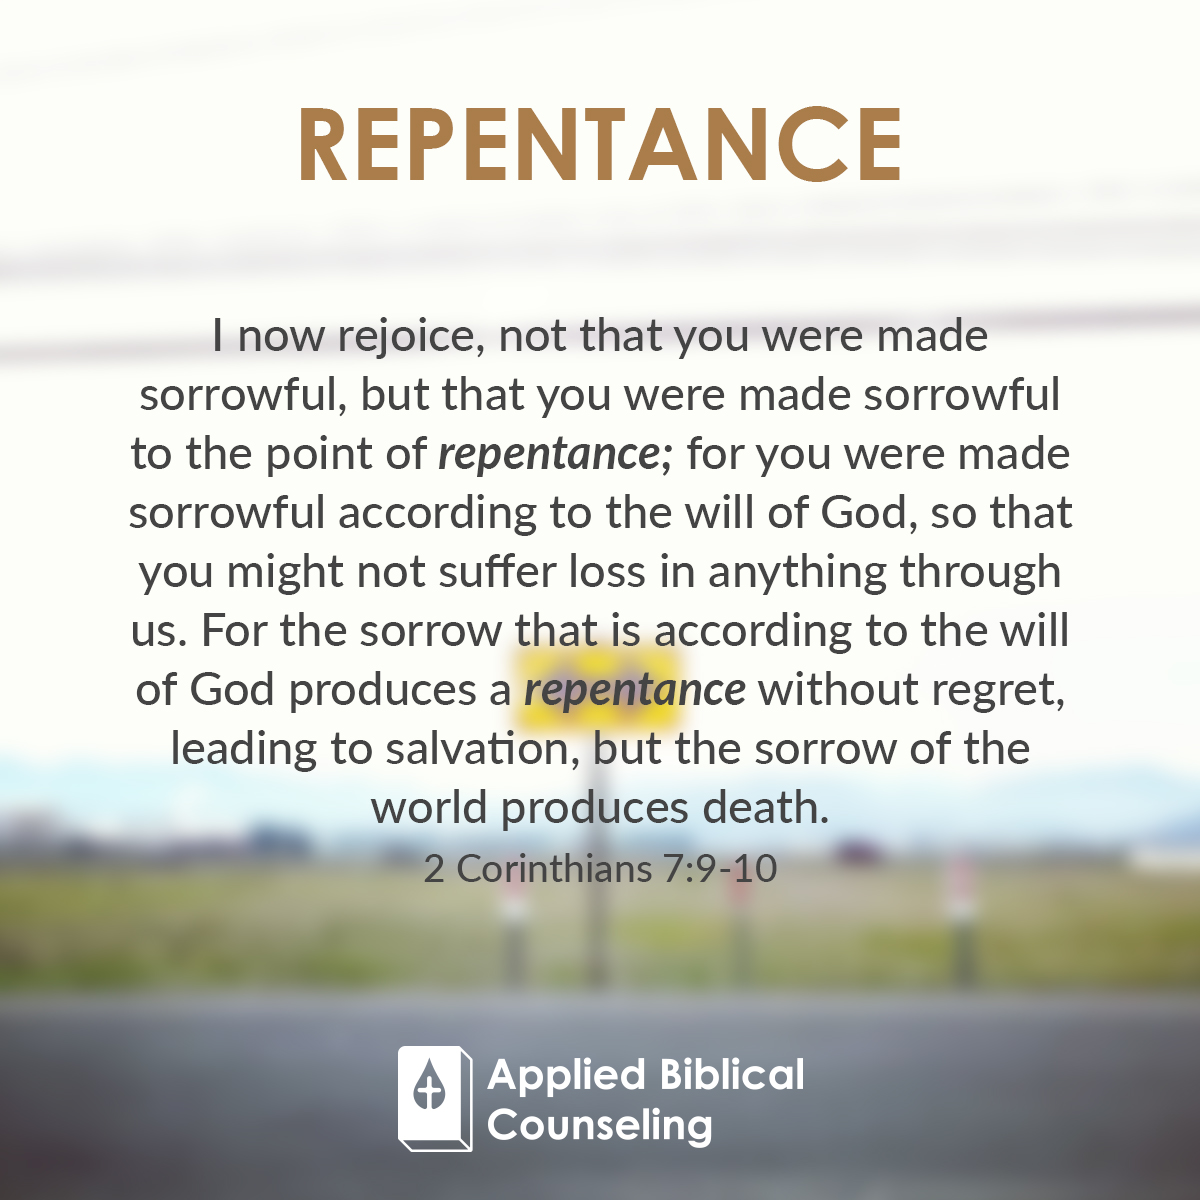 Applied Biblical Counseling Facebook w19 Repentance 1